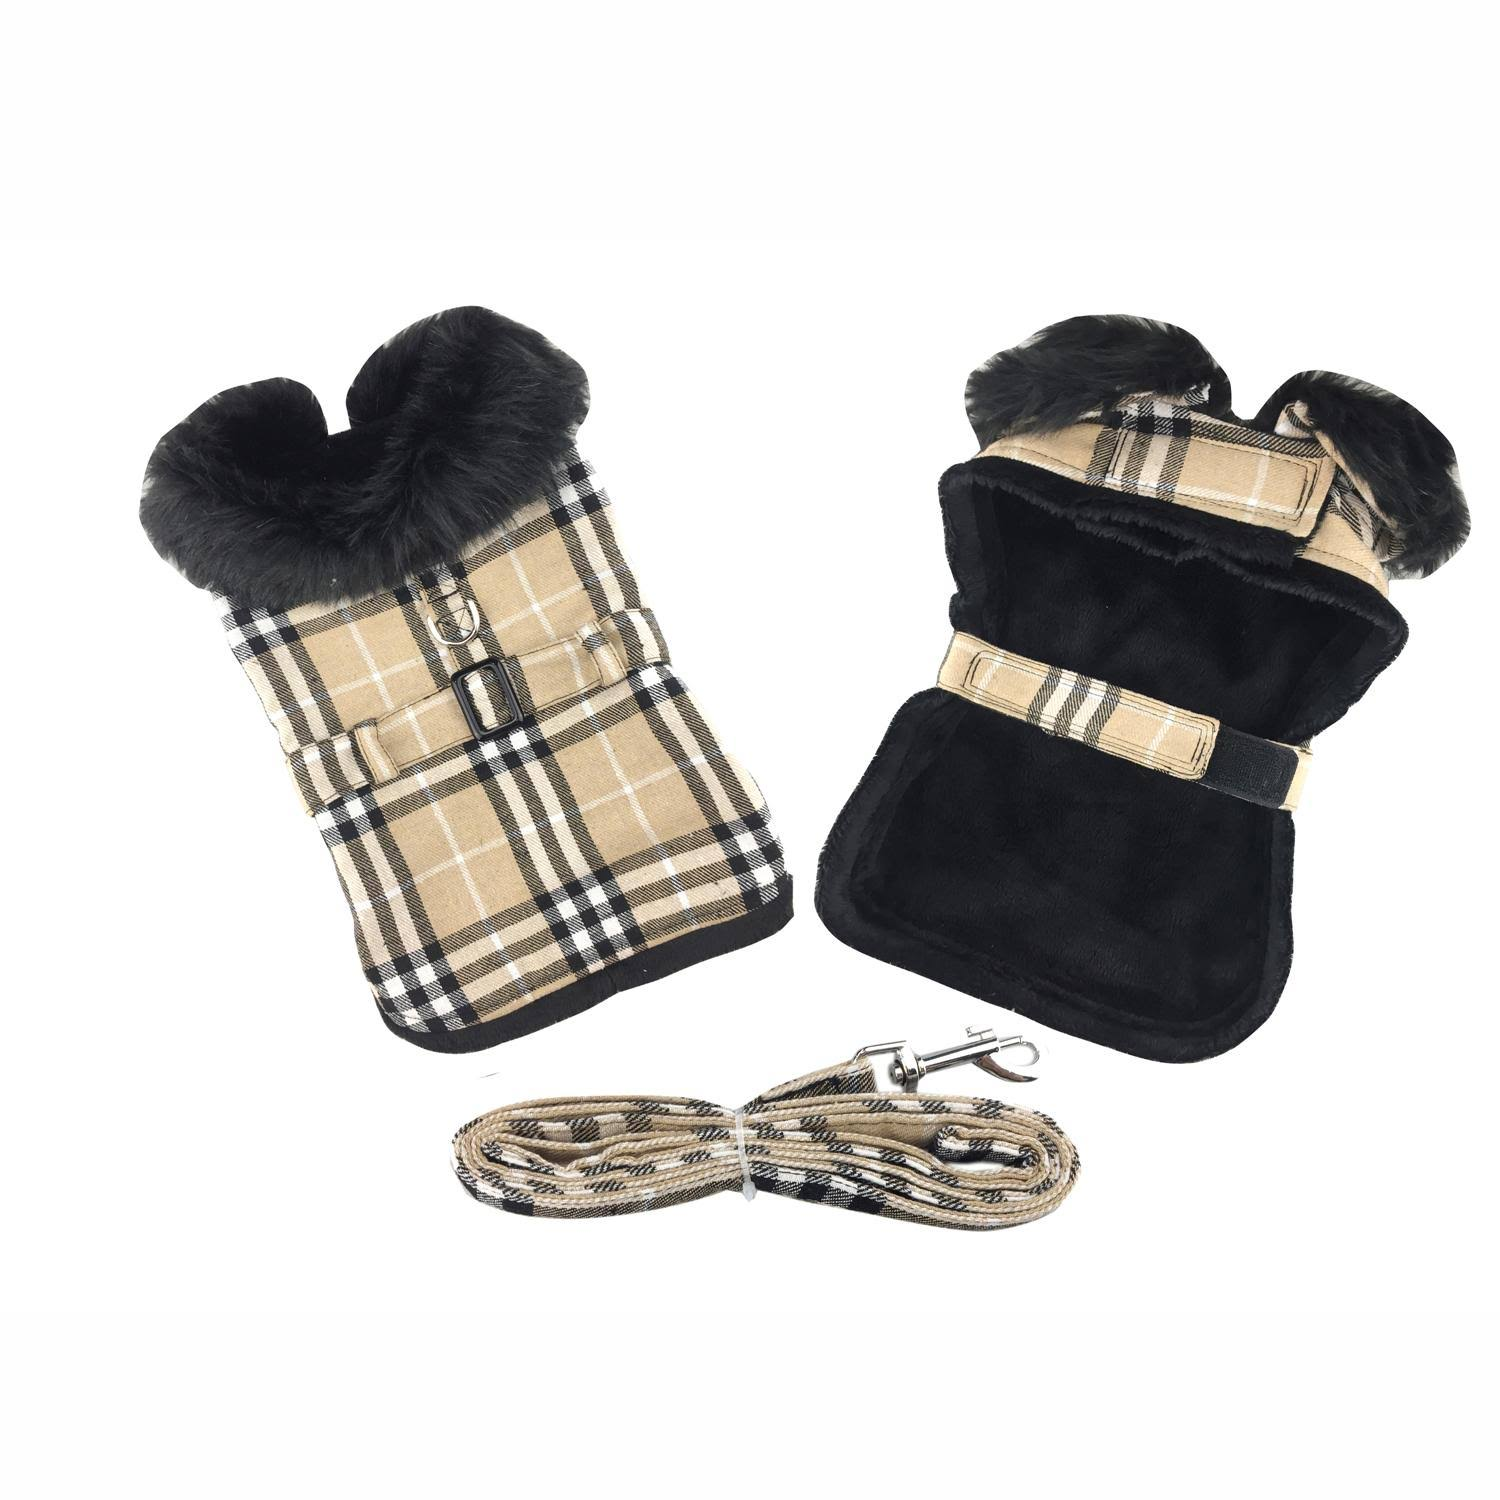 Brown Plaid Classic Dog Coat Harness - With Matching Leash, Large